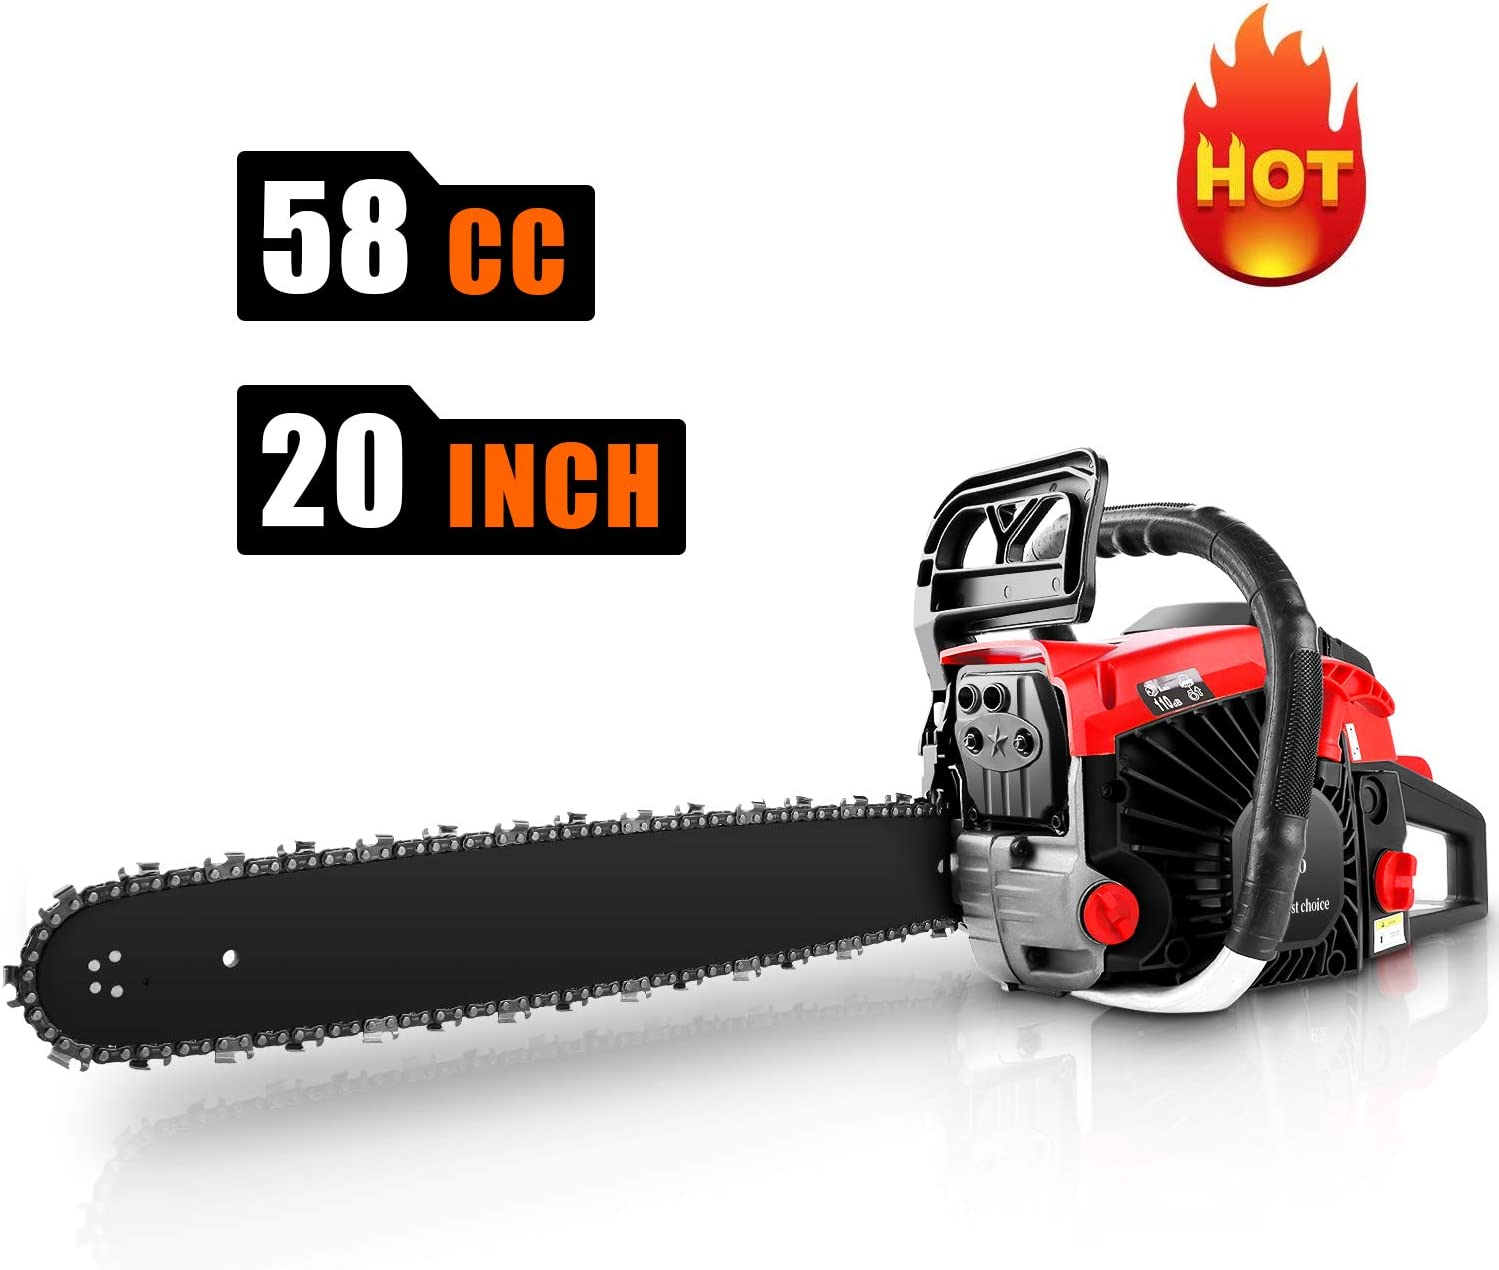 "CHAKOR 58CC Chainsaw, 20"" Gas Chainsaw, 2 Strokes 3.5HP Gas Powered Chainsaw, Petrol Chain Saw for Cutting Wood with Tool Kit"